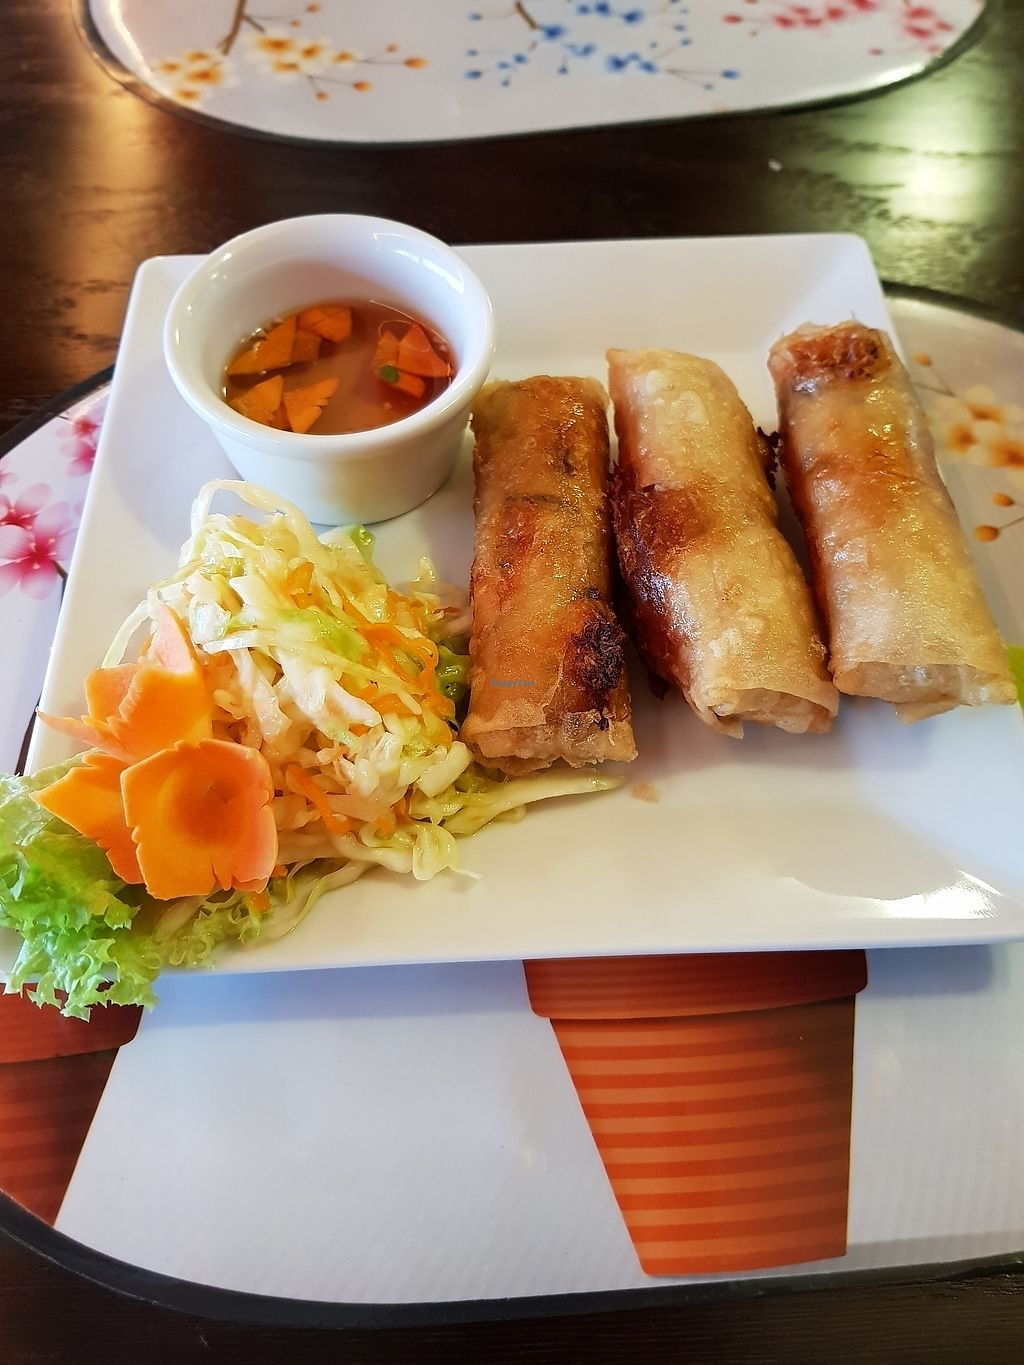 "Photo of Q&B Restauracja  by <a href=""/members/profile/Mirage"">Mirage</a> <br/>spring rolls <br/> August 4, 2017  - <a href='/contact/abuse/image/97871/288767'>Report</a>"